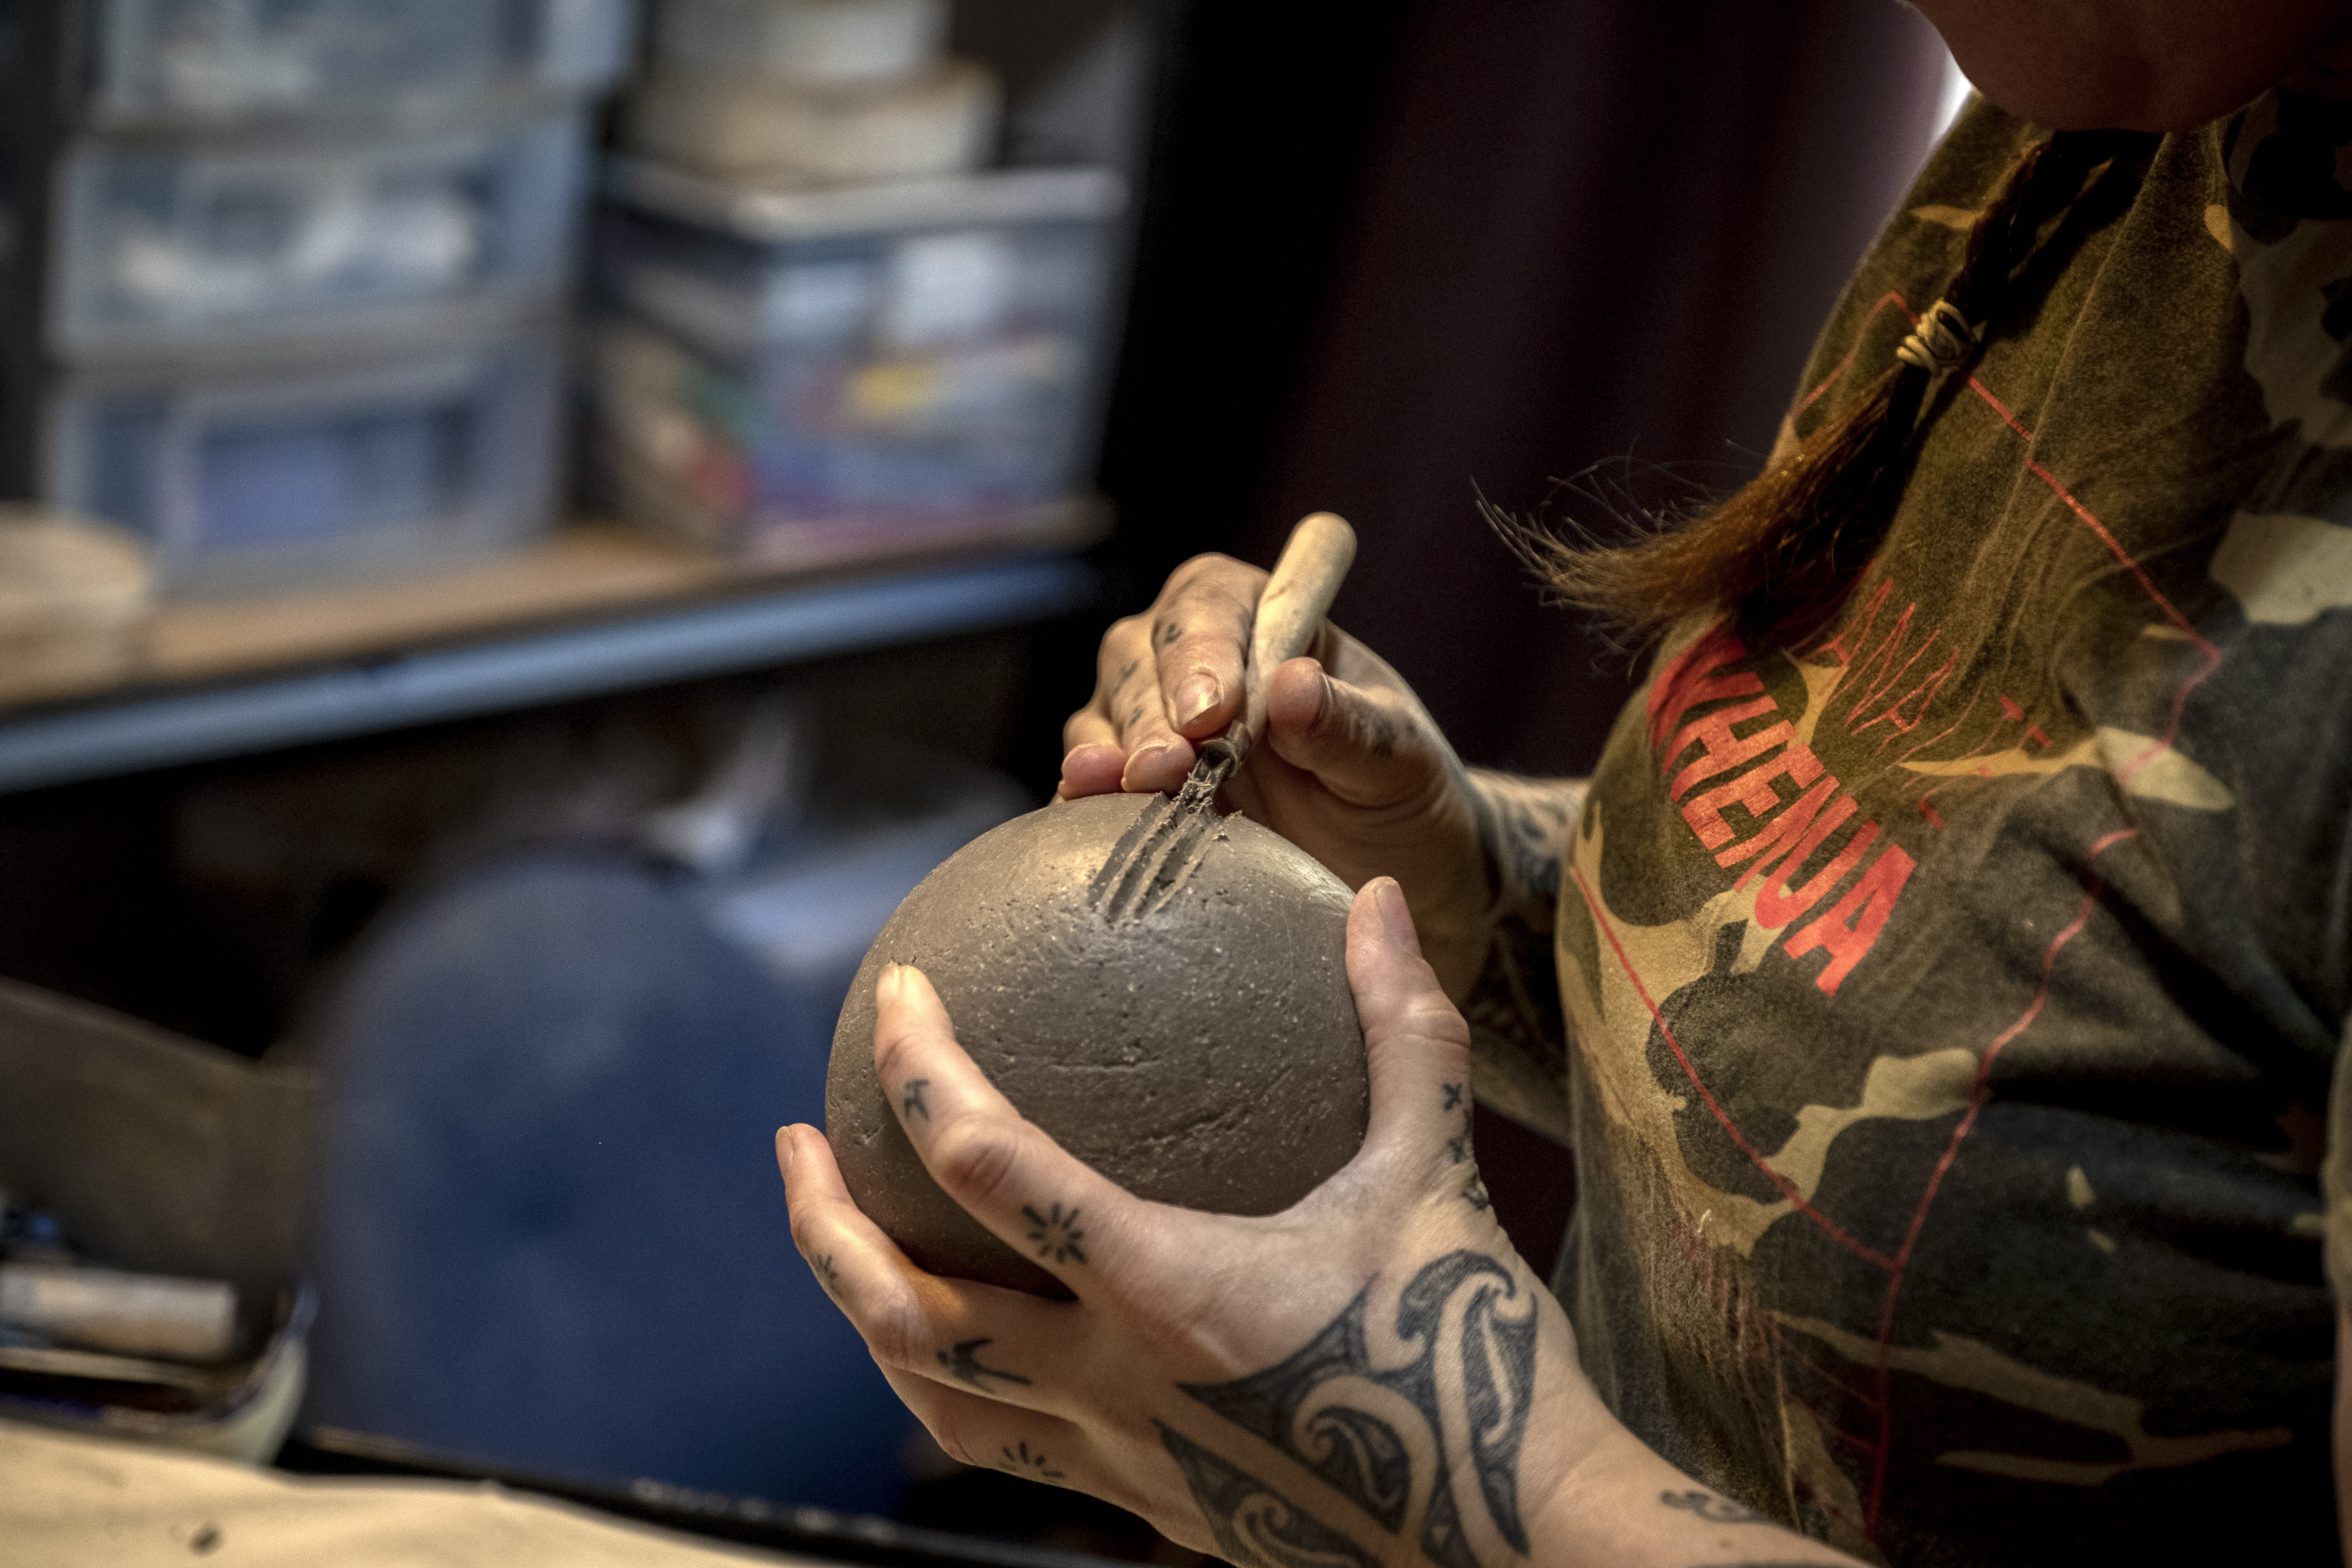 Two hands working on a piece of unfired clay pottery.